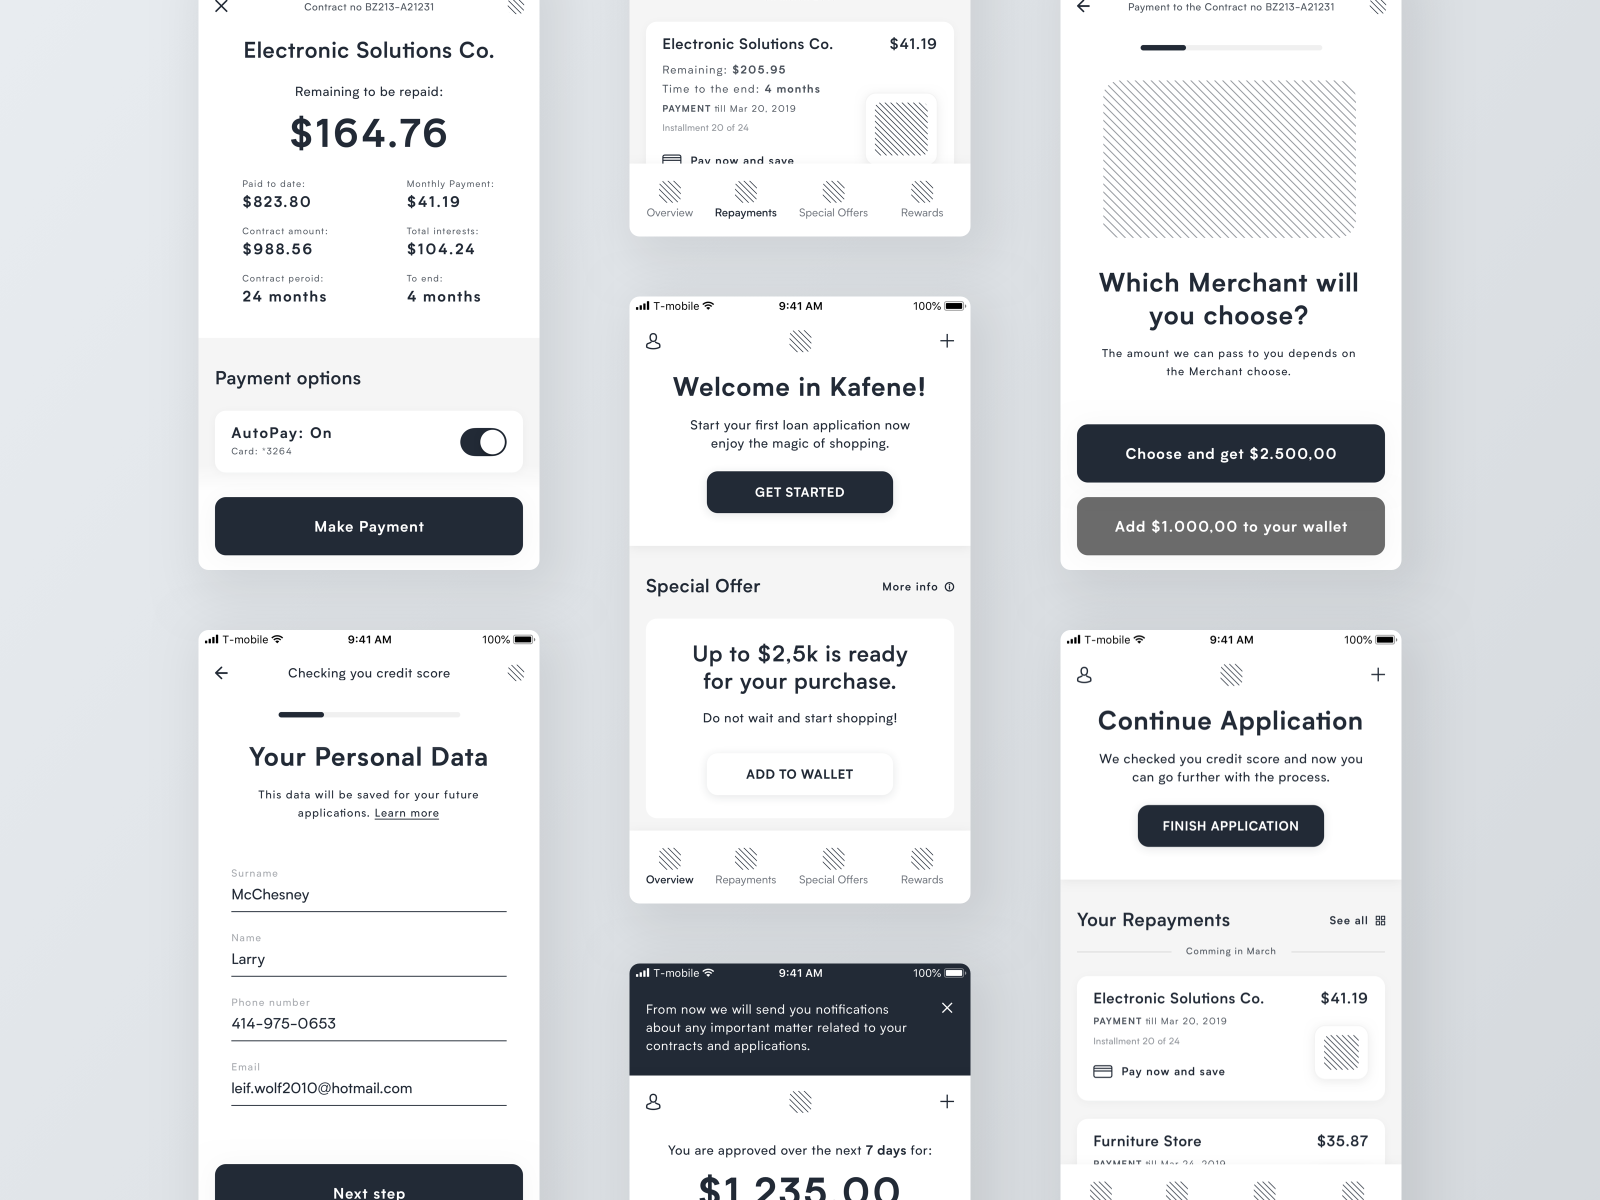 A medium fidelity wireframe example of screens in Ryszard Cz's financial loan app.